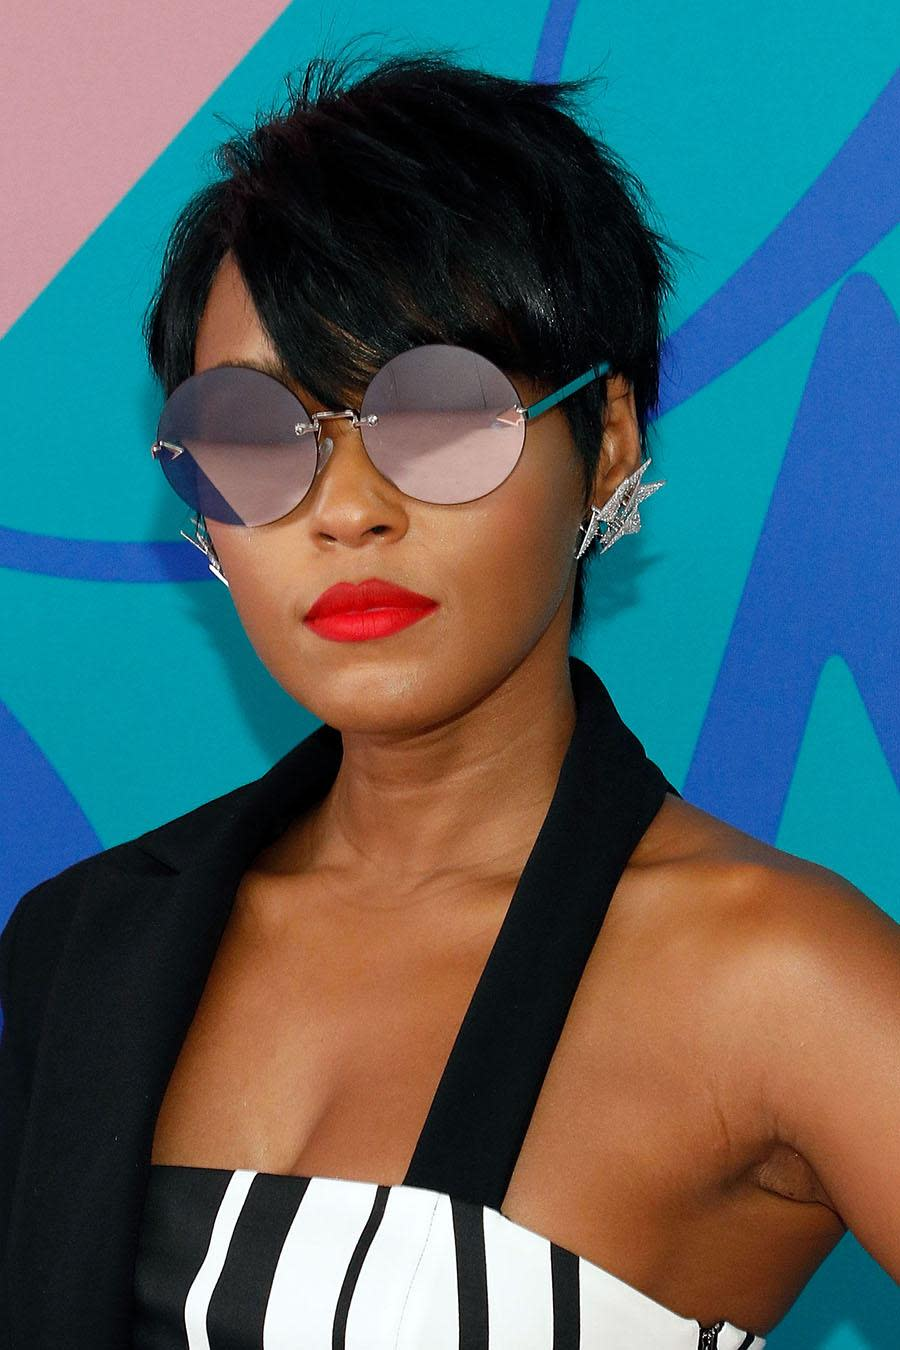 <p>At the 2017 CFDA Fashion Awards, Janelle Monae stole the scene with trendy sunglasses and her short tousled pixie cut. (Photo: Taylor Hill/FilmMagic) </p>